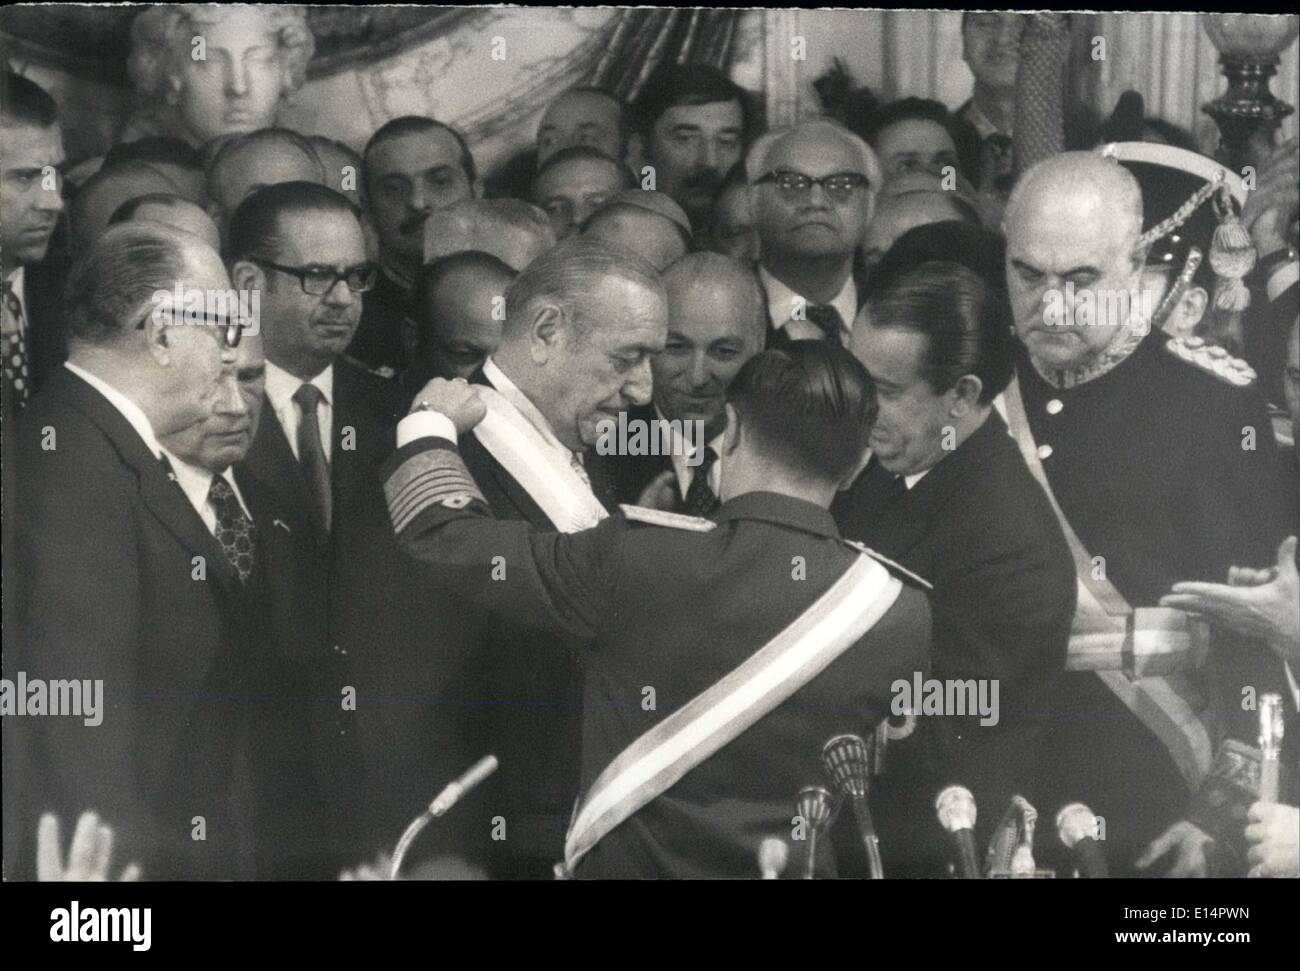 Apr. 18, 2012 - After 18 years Commences again In Argentina a Peronist Goven Bluenose Ares, May 25th 1973 : On occasion of the ''25 de Mayo'' the Ida  bertad'' In Argentina there took place the assumption of ex-president successor Dr. Hector J.Camphor as president of Argentina succeeding the  Junta headed by general A.Larousse,- The traditional ceremony of a  took place at government house and the mentioned sites with their alga's to celebrate the day, and to see their new Chiefs - Stock Image